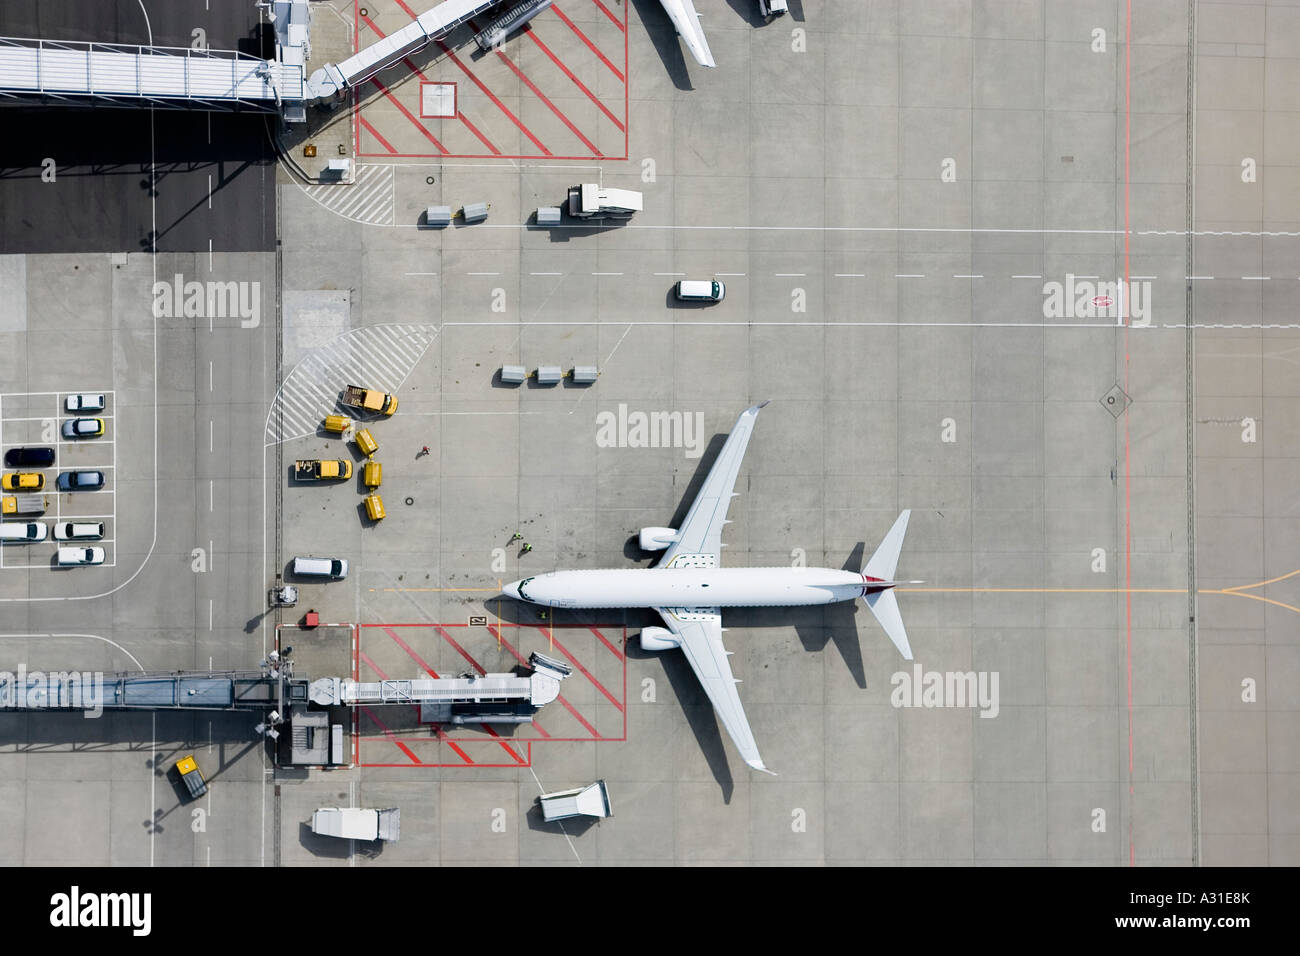 Aerial view of airplane - Stock Image